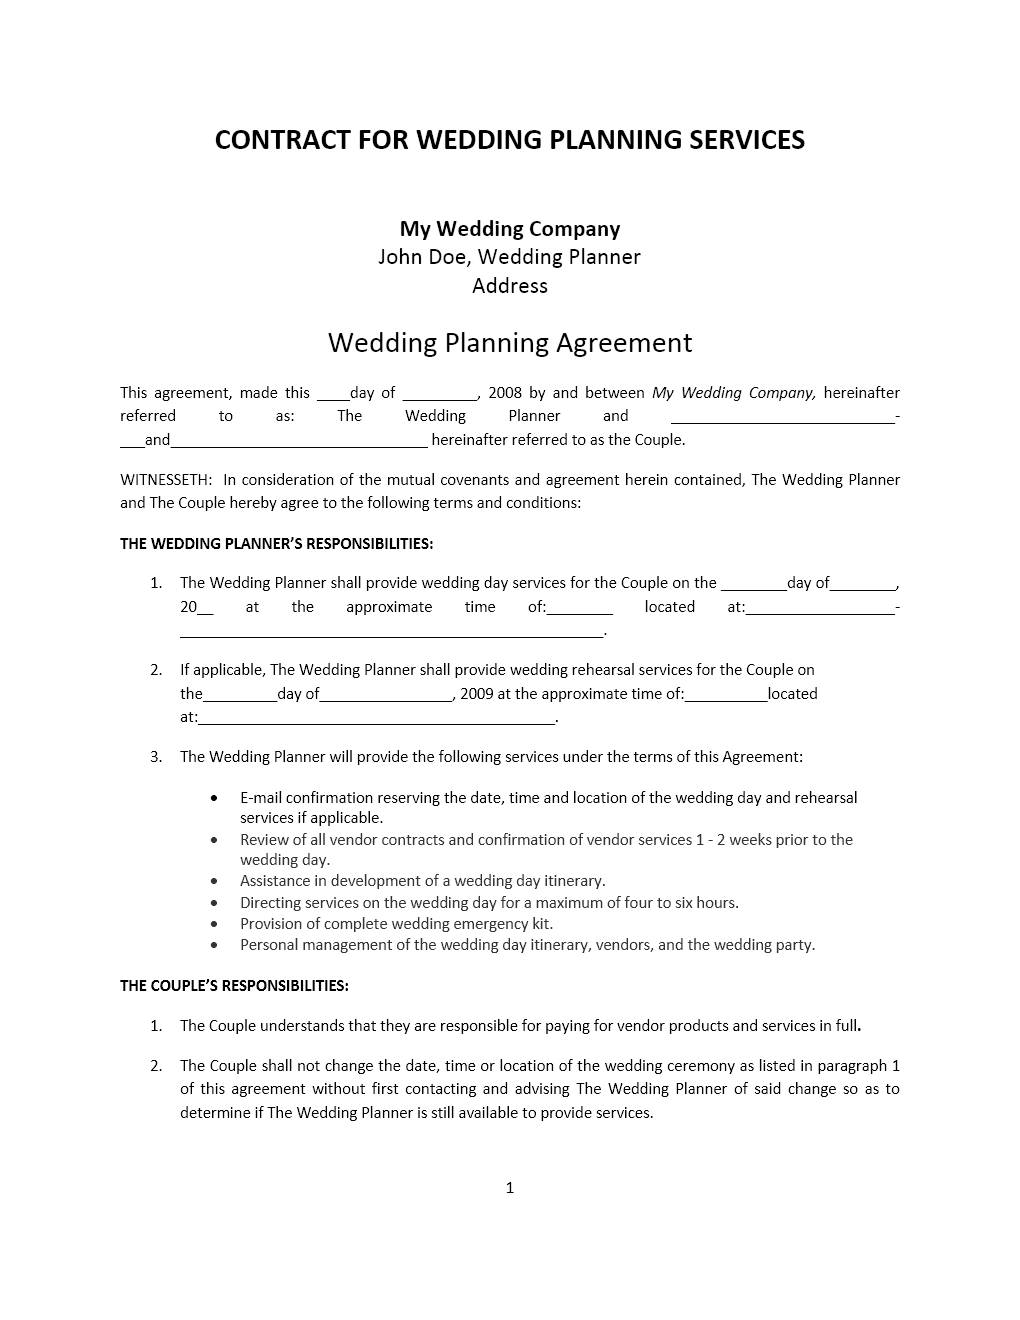 Free Construction Contract Agreement Template Wedding Planner Contract Template